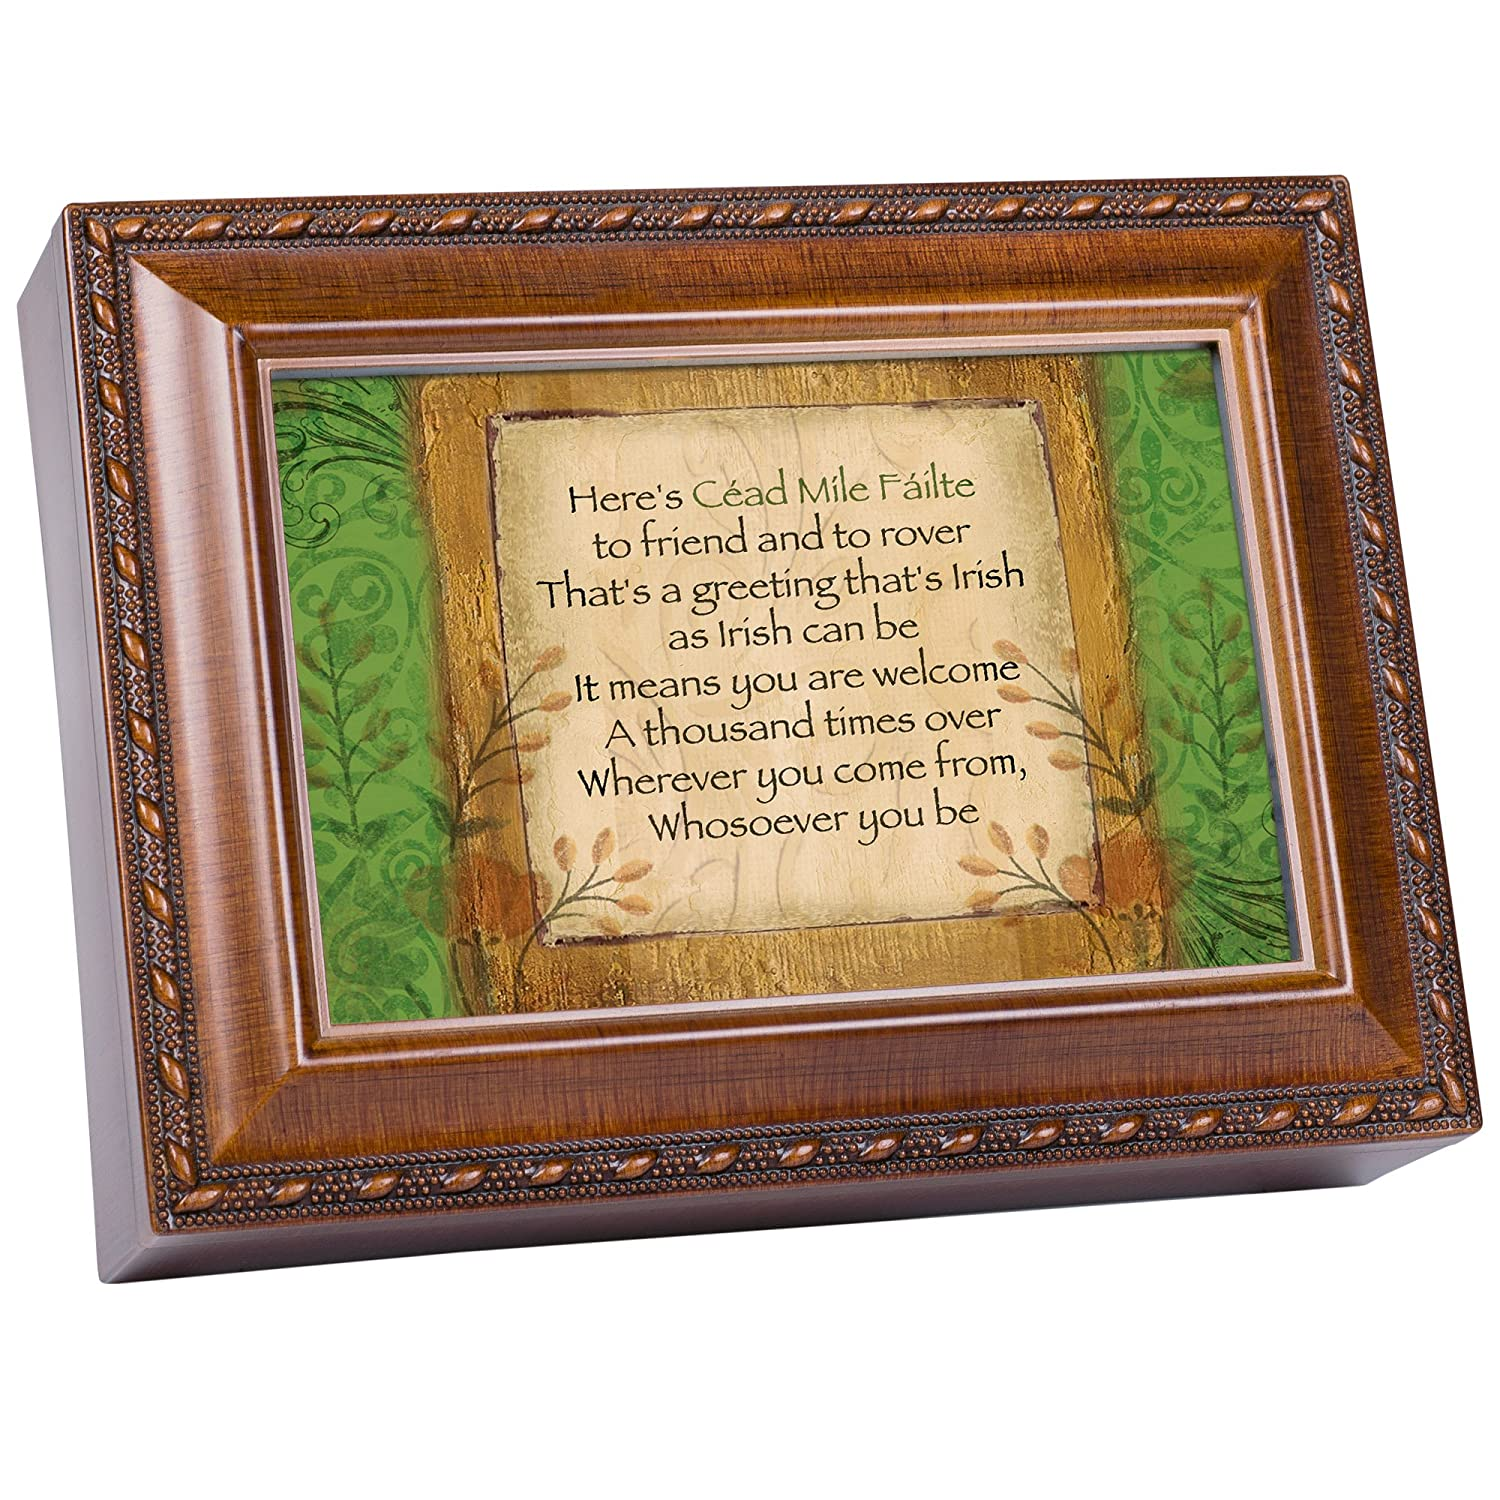 驚きの値段 Irish Greeting Cottage Garden Cottage Woodgrain Traditional Music Box B007P7Z1VO Plays Garden Irish Eyes B007P7Z1VO, 住マイル:40cb166d --- arcego.dominiotemporario.com